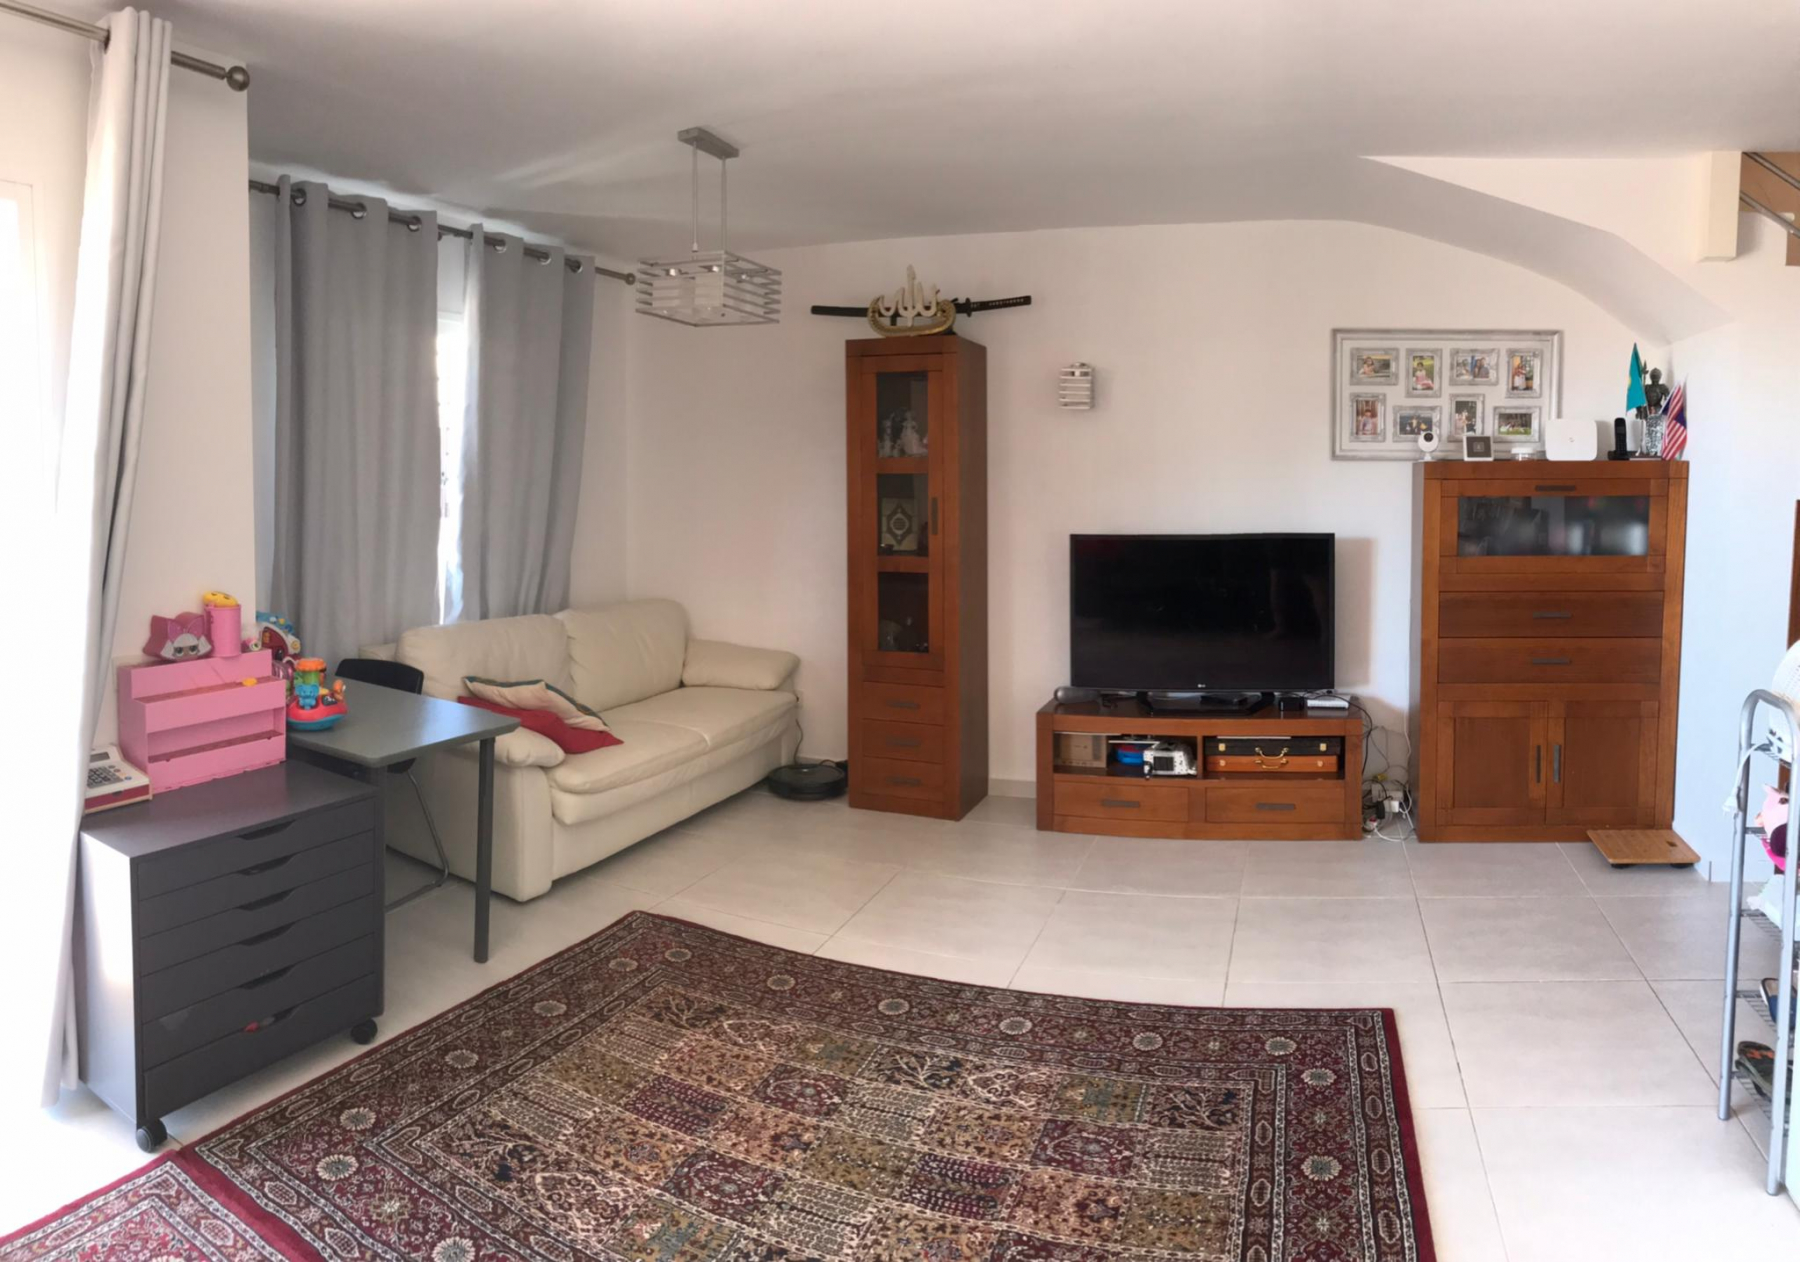 Properties for Sale in Tenerife, Canary Islands, Spain | SylkWayStar Real Estate. 4 bedrooms Townhouse - El Madroñal . Image-26197